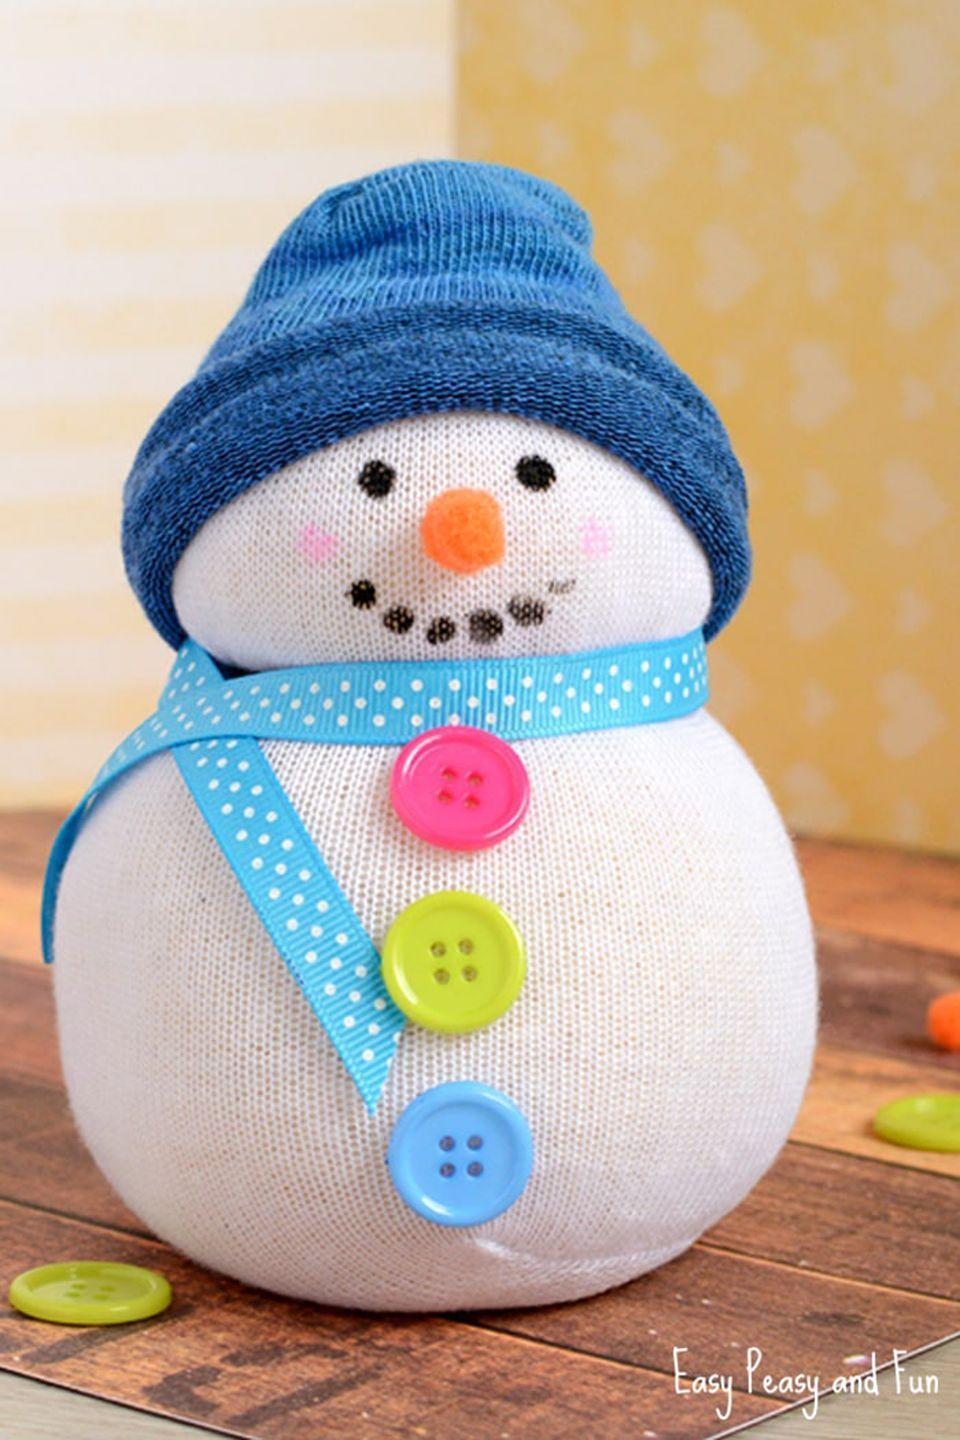 "<p>Forget the needle and thread—grab some socks and buttons instead! </p><p><strong>Get the tutorial at <a href=""https://www.easypeasyandfun.com/no-sew-sock-snowman-craft/"" rel=""nofollow noopener"" target=""_blank"" data-ylk=""slk:Easy Peasy and Fun"" class=""link rapid-noclick-resp"">Easy Peasy and Fun</a>.</strong></p>"